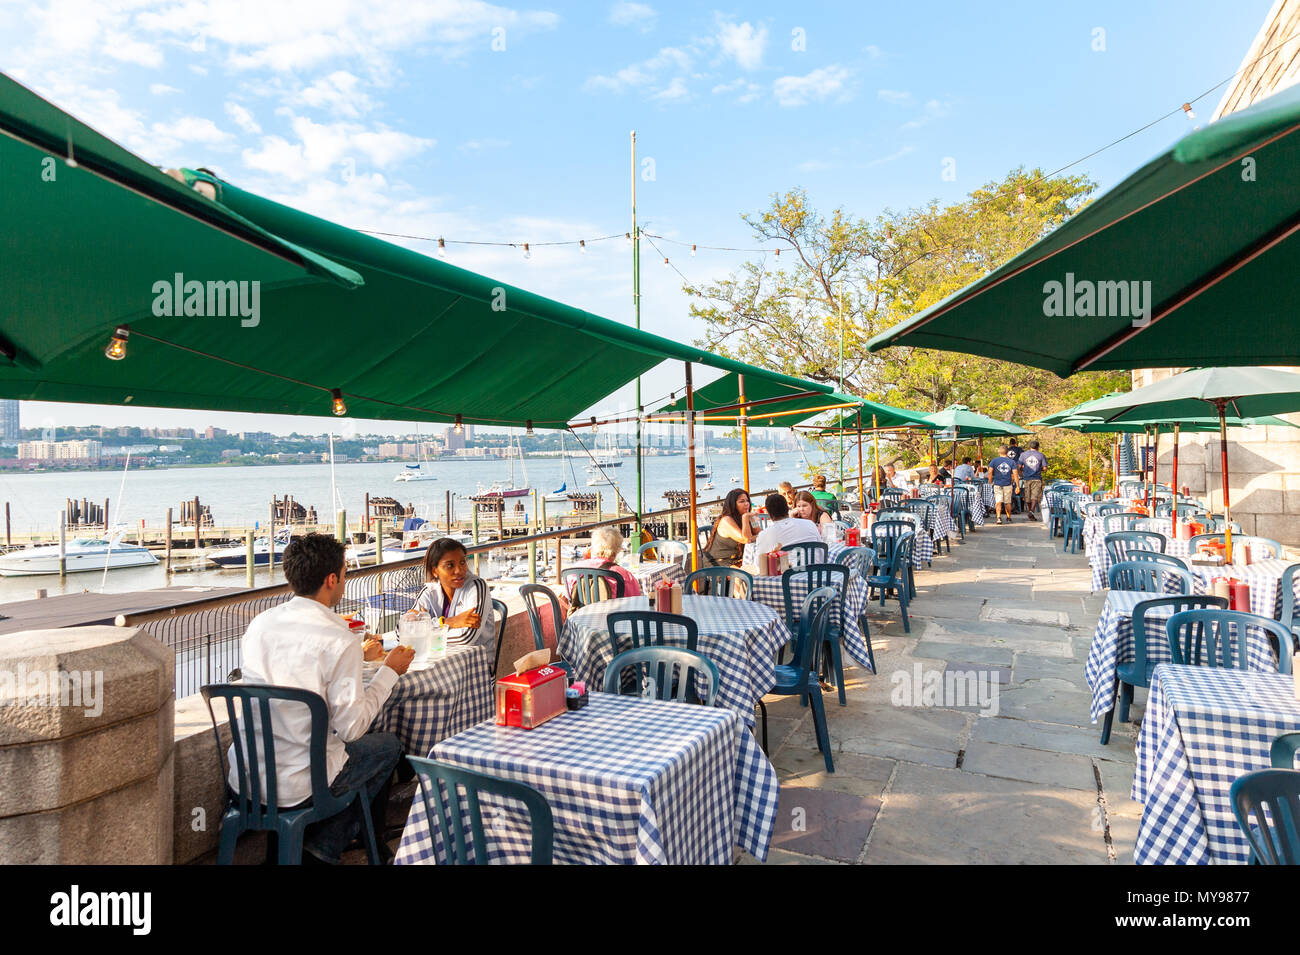 Central Park Boat Basin Cafe